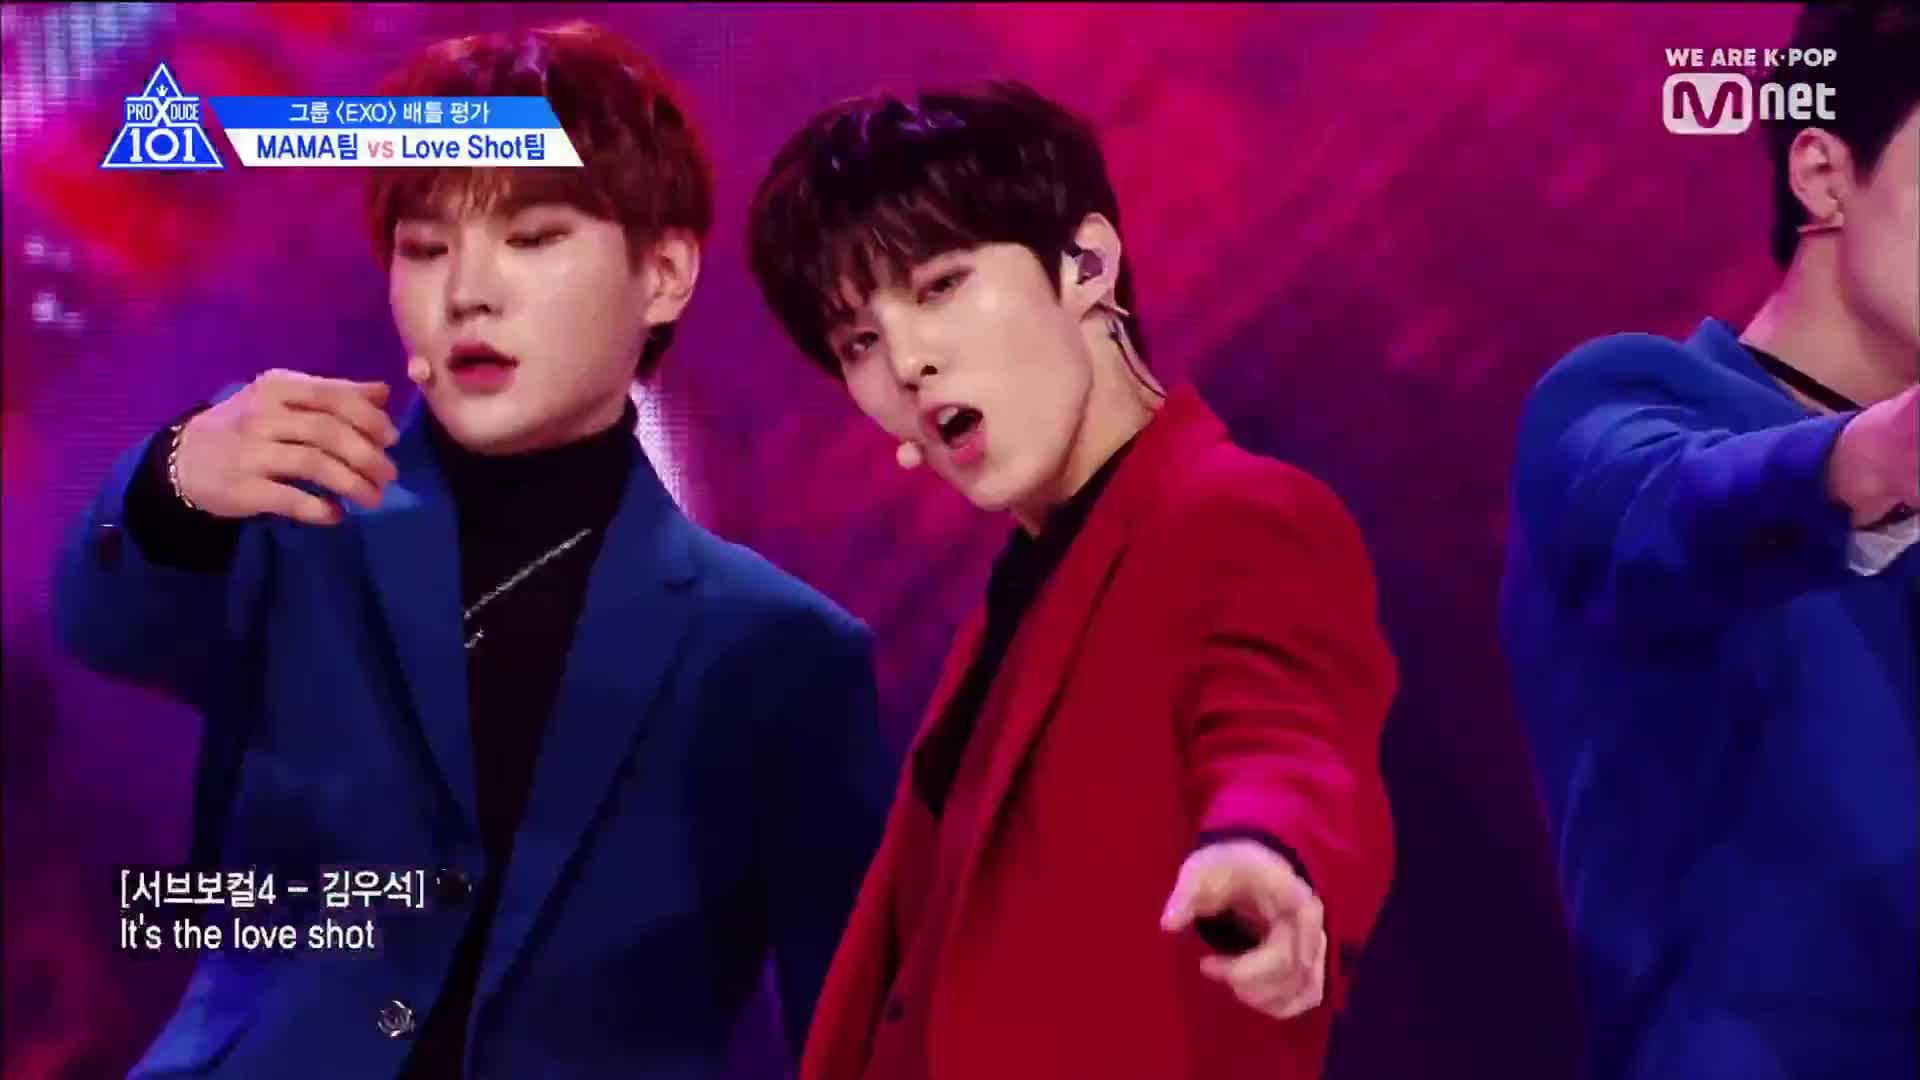 Produce X 101 Gifs Search | Search & Share on Homdor